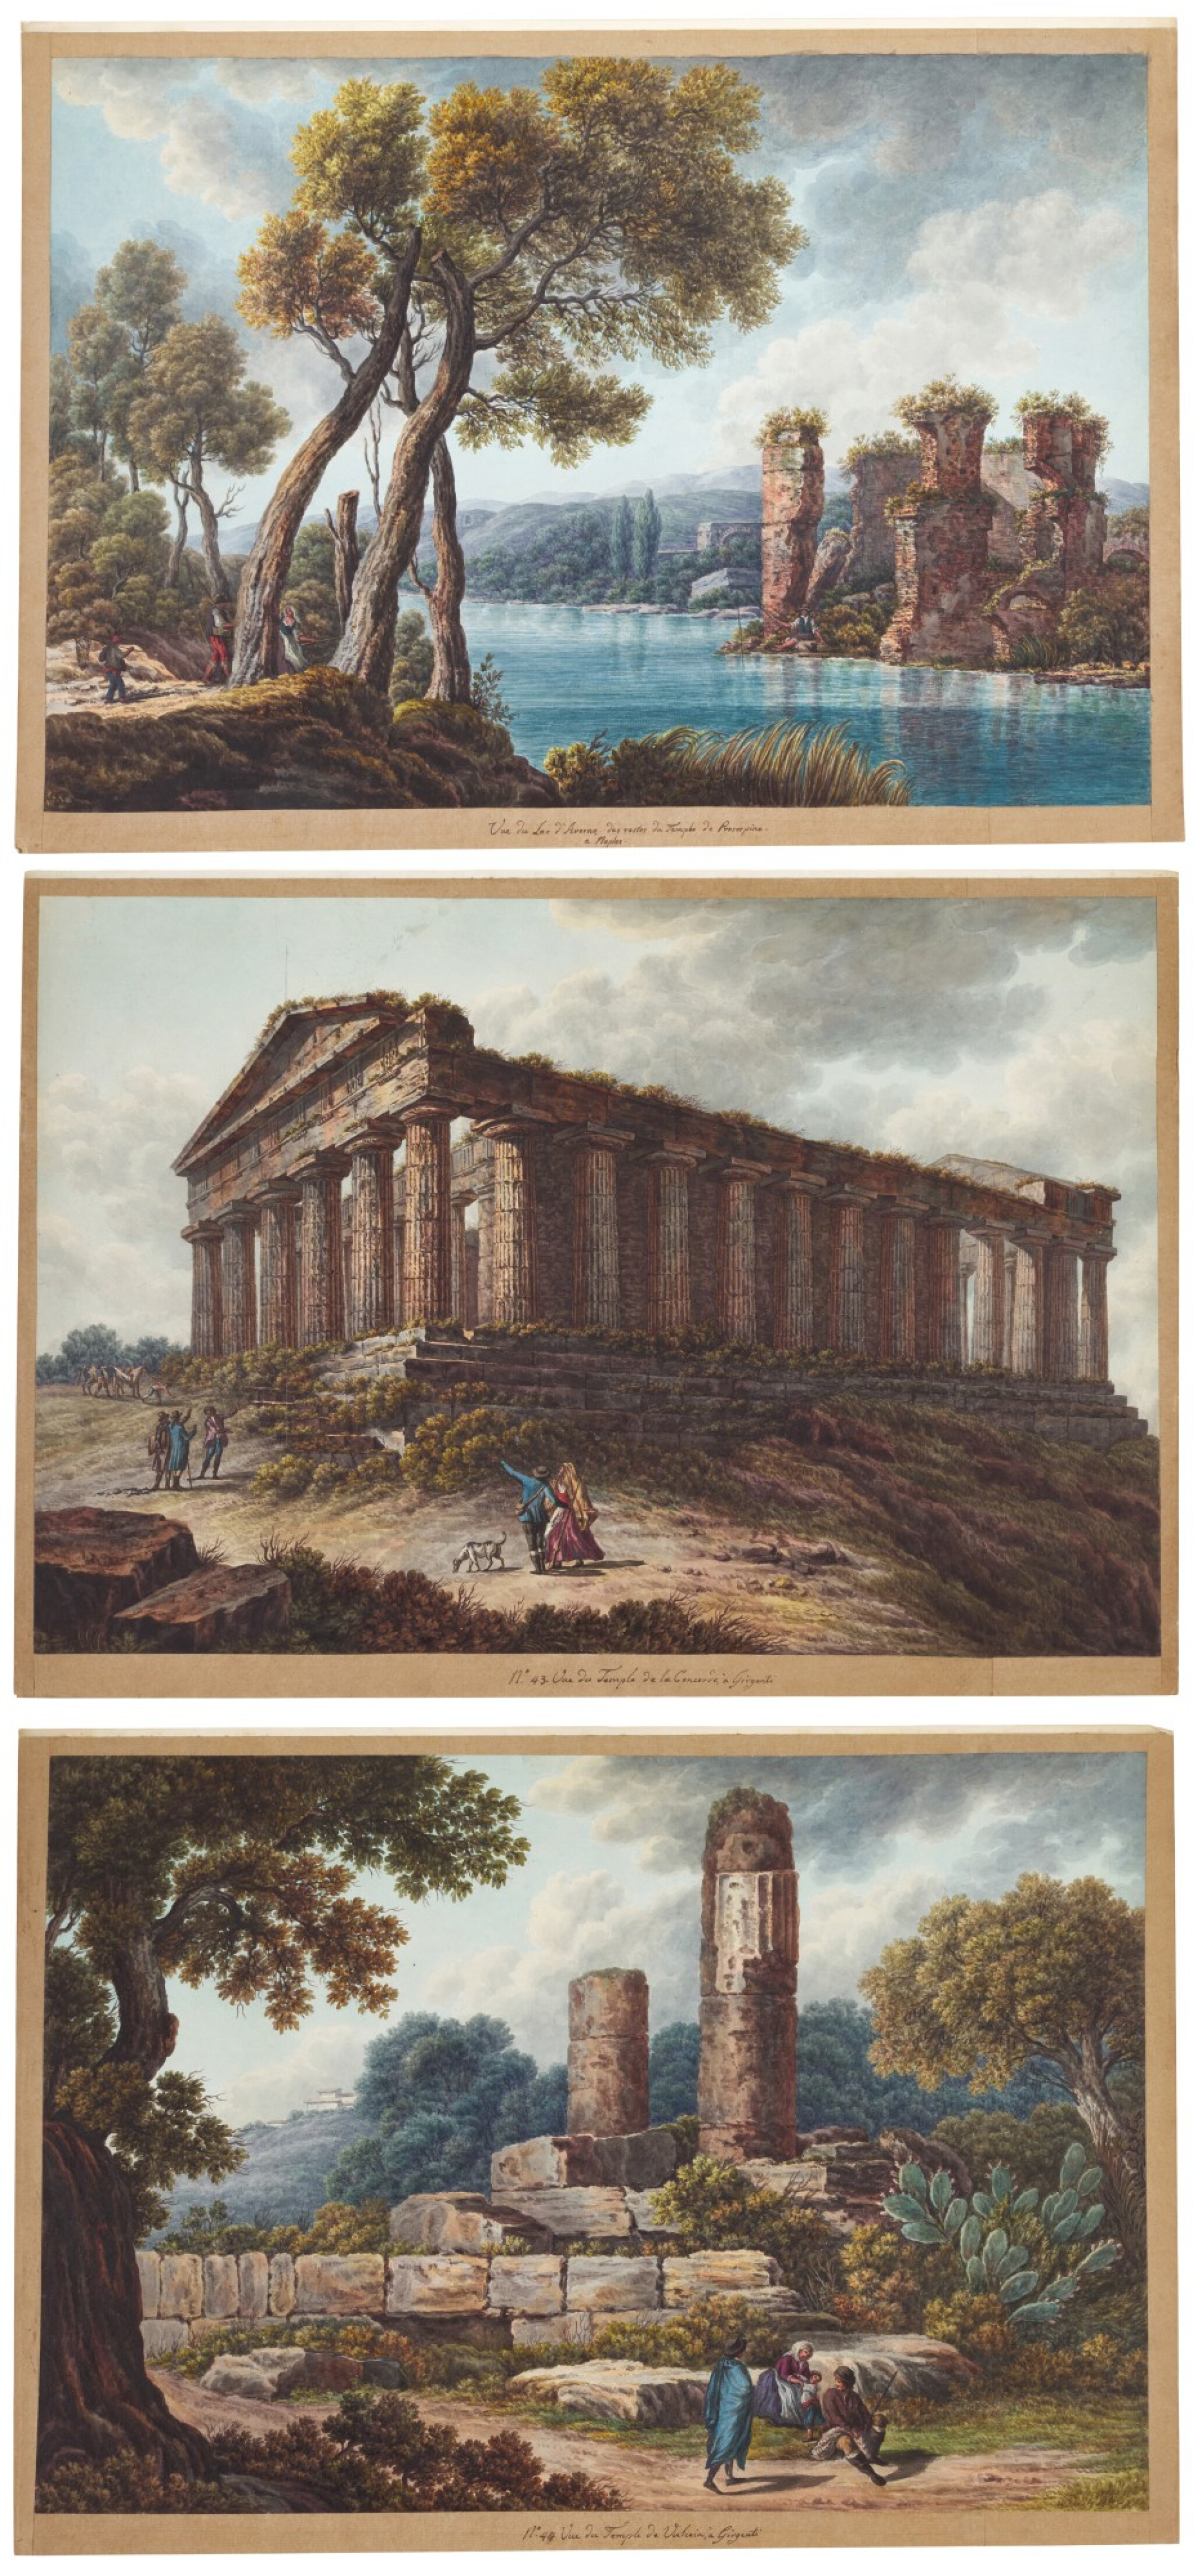 View full screen - View 1 of Lot 111. A) View of The Temple of Concord, Agrigento B) View of The Temple of Vulcan, Agrigento C) View of the Lake of Averno and The Temple of Proserpina near Naples.